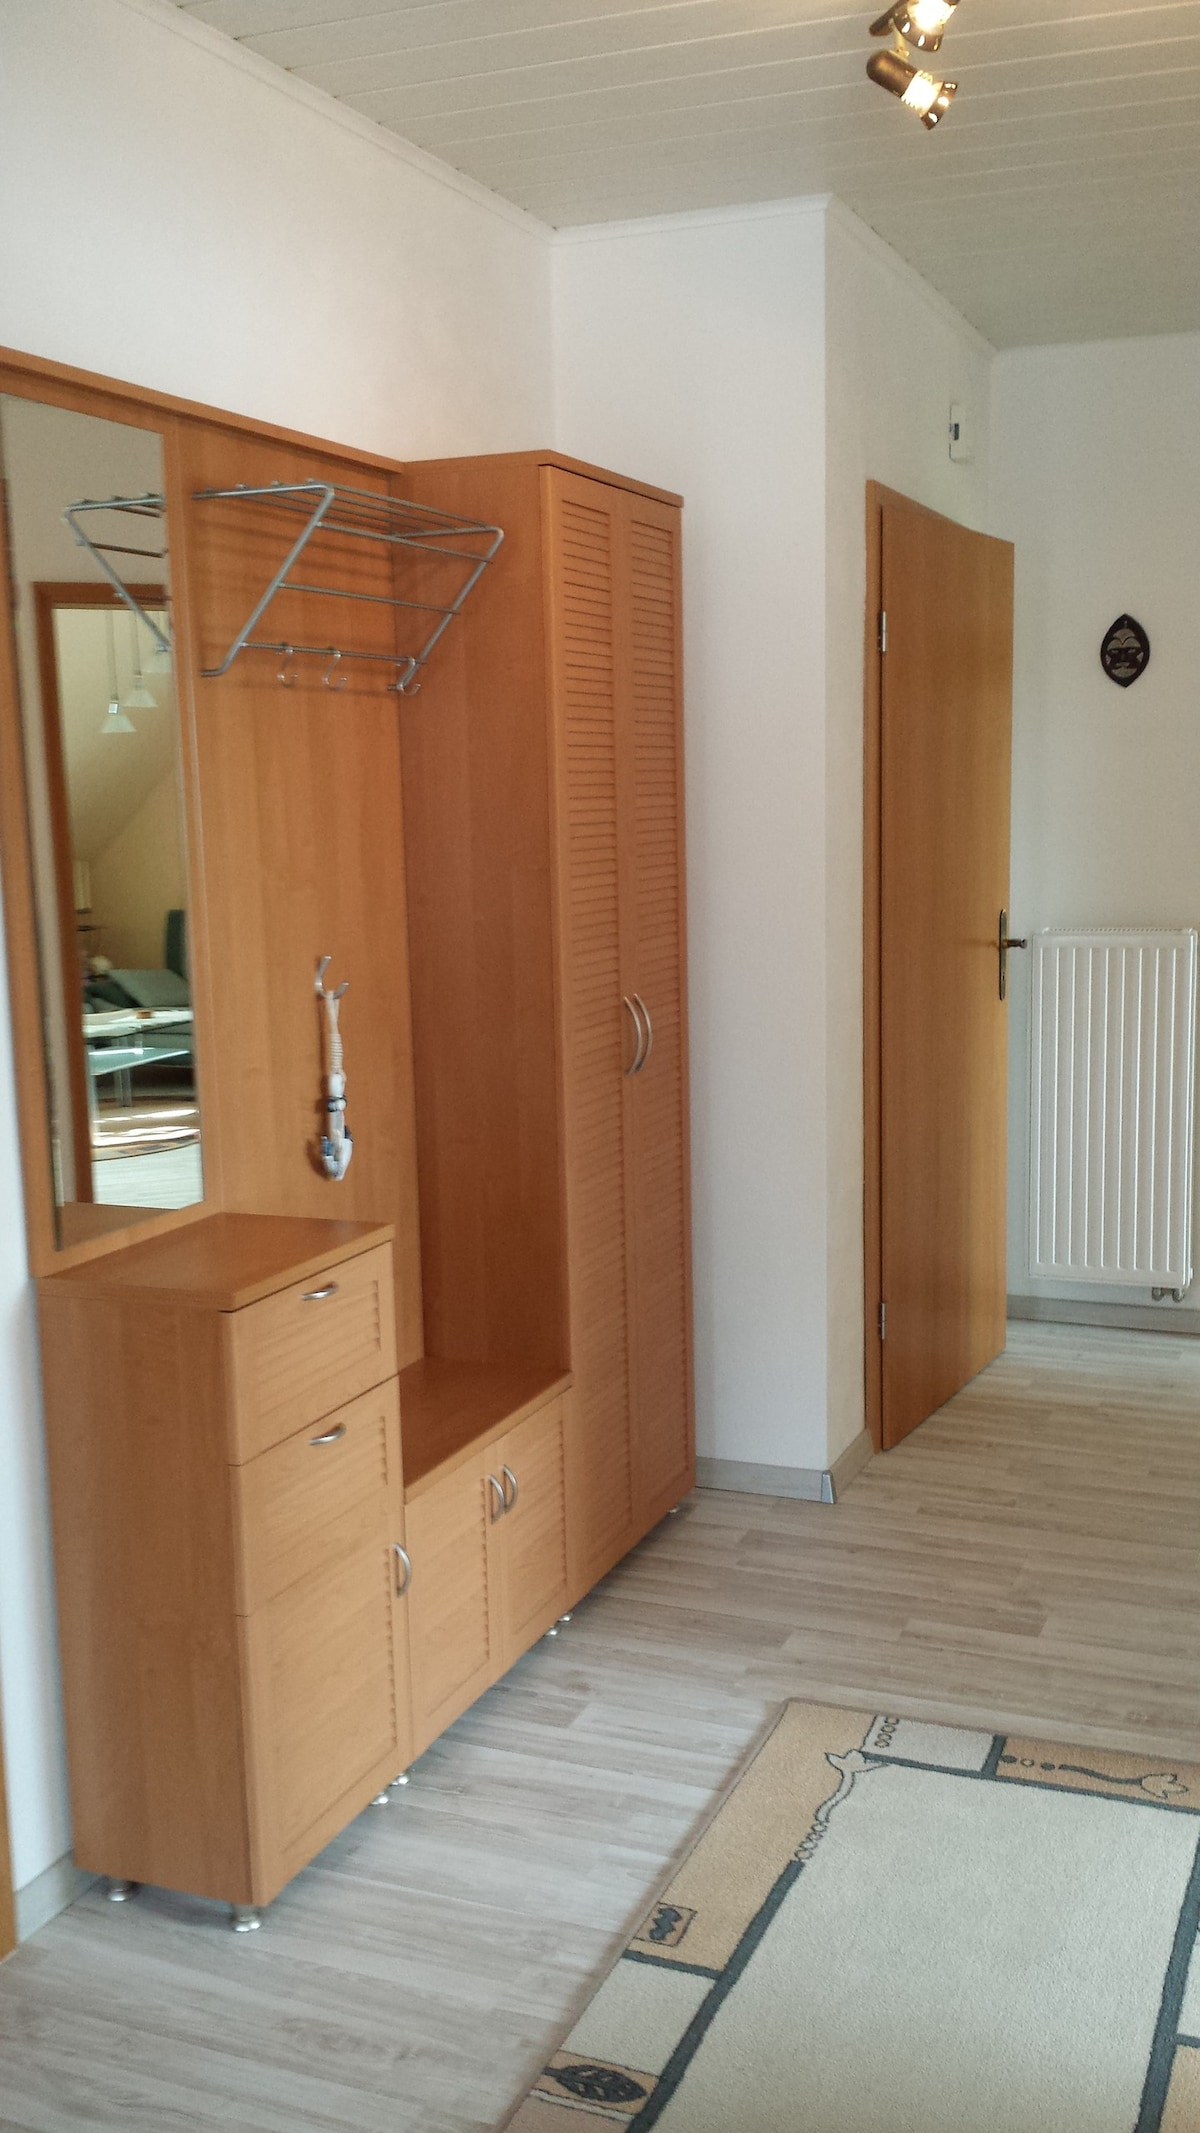 Brieselang 2018 (with Photos): Top 20 Places To Stay In Brieselang    Vacation Rentals, Vacation Homes   Airbnb Brieselang, Brandenburg, Germany